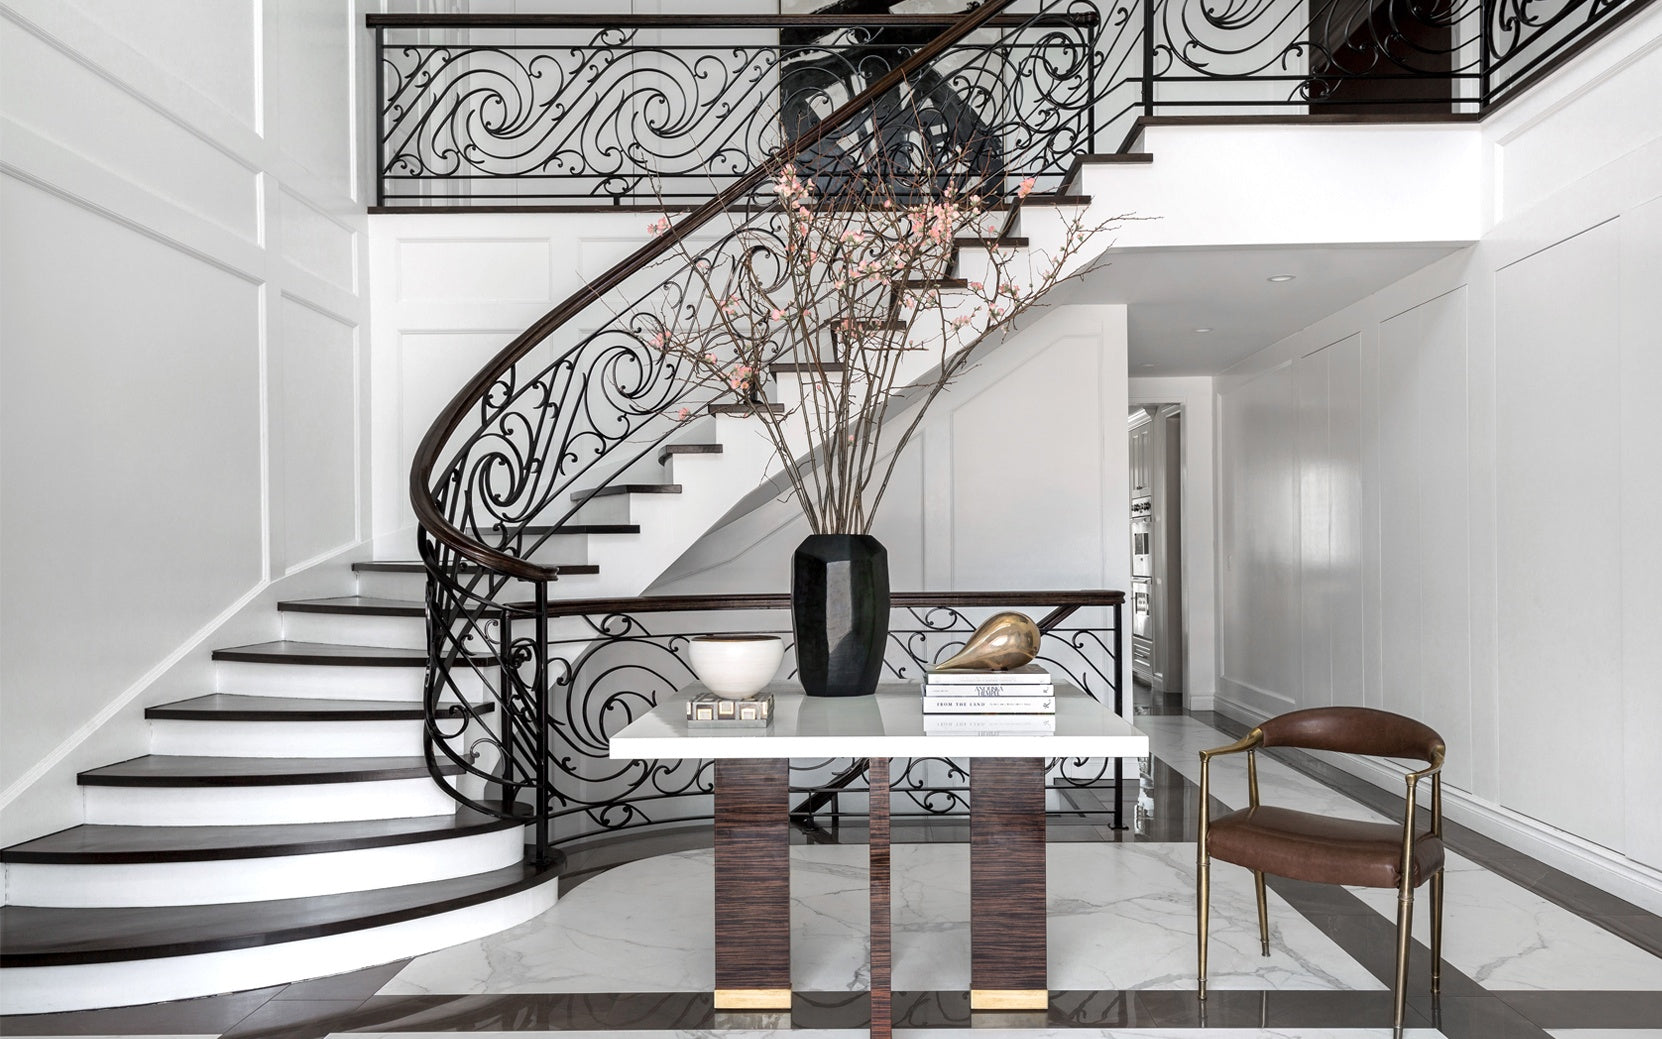 Beautiful Staircase Ideas For Your Home - two-tone staircase - LuxDeco.com Style Guide